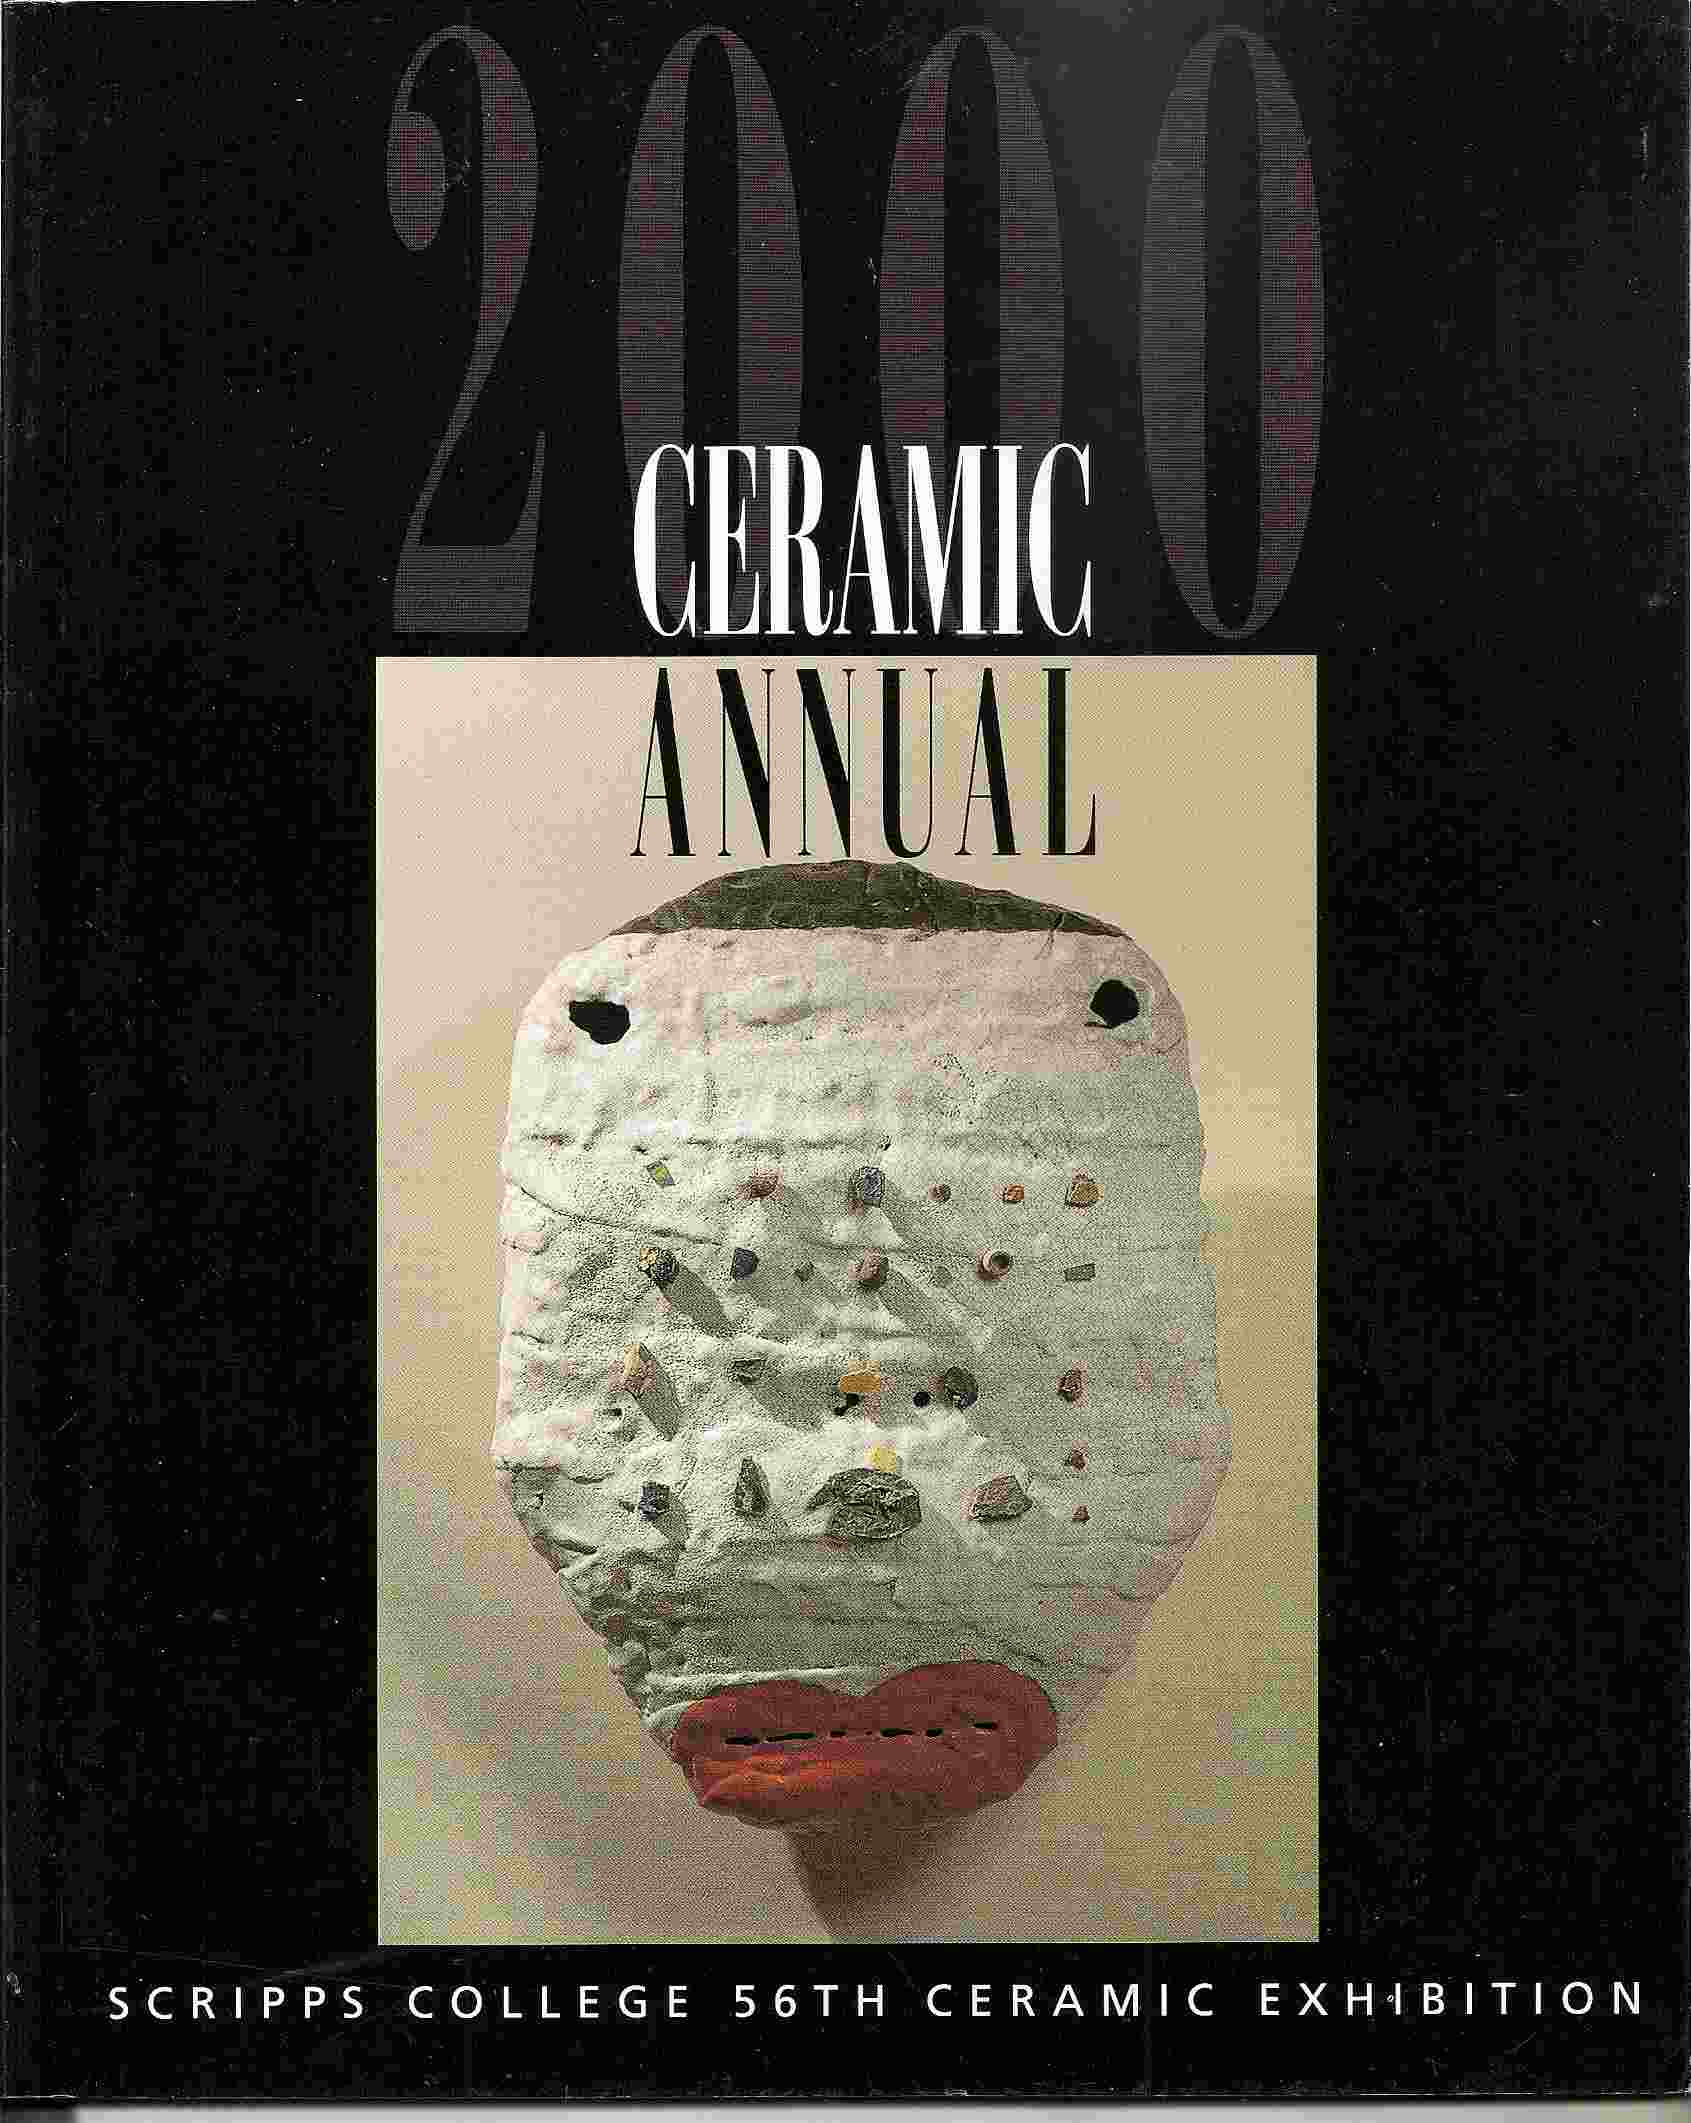 Image for 56th Annual Invitational Ceramic Exhibition: ; 2000 CERAMIC ANNUAL: SCRIPPS COLLEGE 56TH CERAMIC EXHIBITION